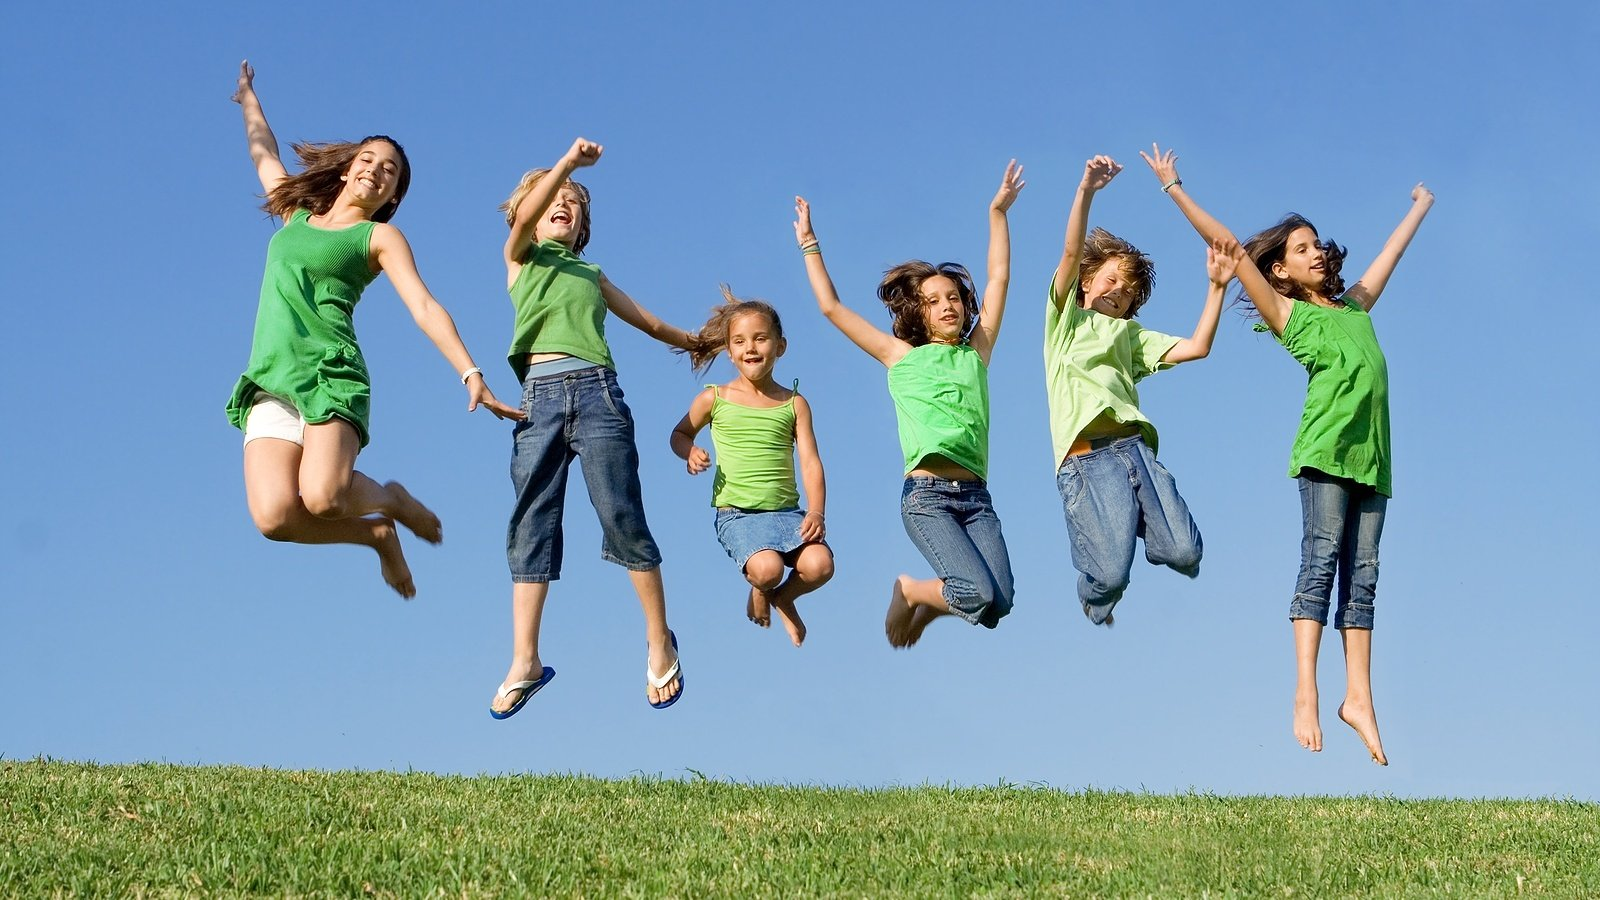 bigstock_Happy_Group_Of_Kids_Jumping_3517047.jpg